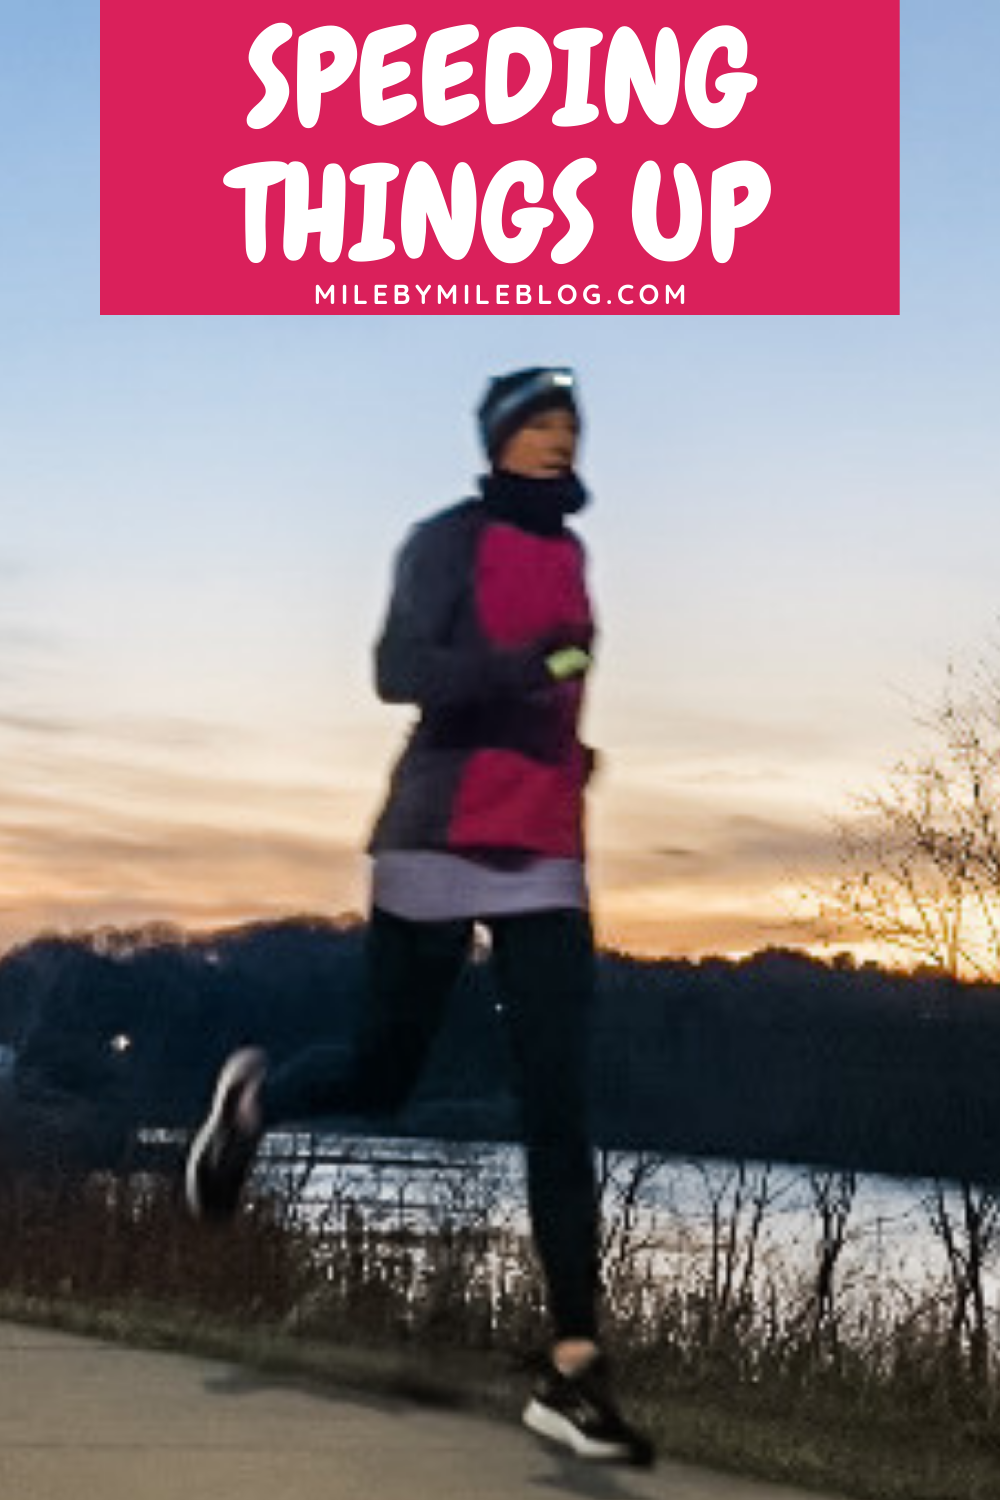 This week I started speeding things up by focusing on faster workouts to prepare for a 5k next month. Check out my week of workouts that included hard runs, easy runs, and strength training.